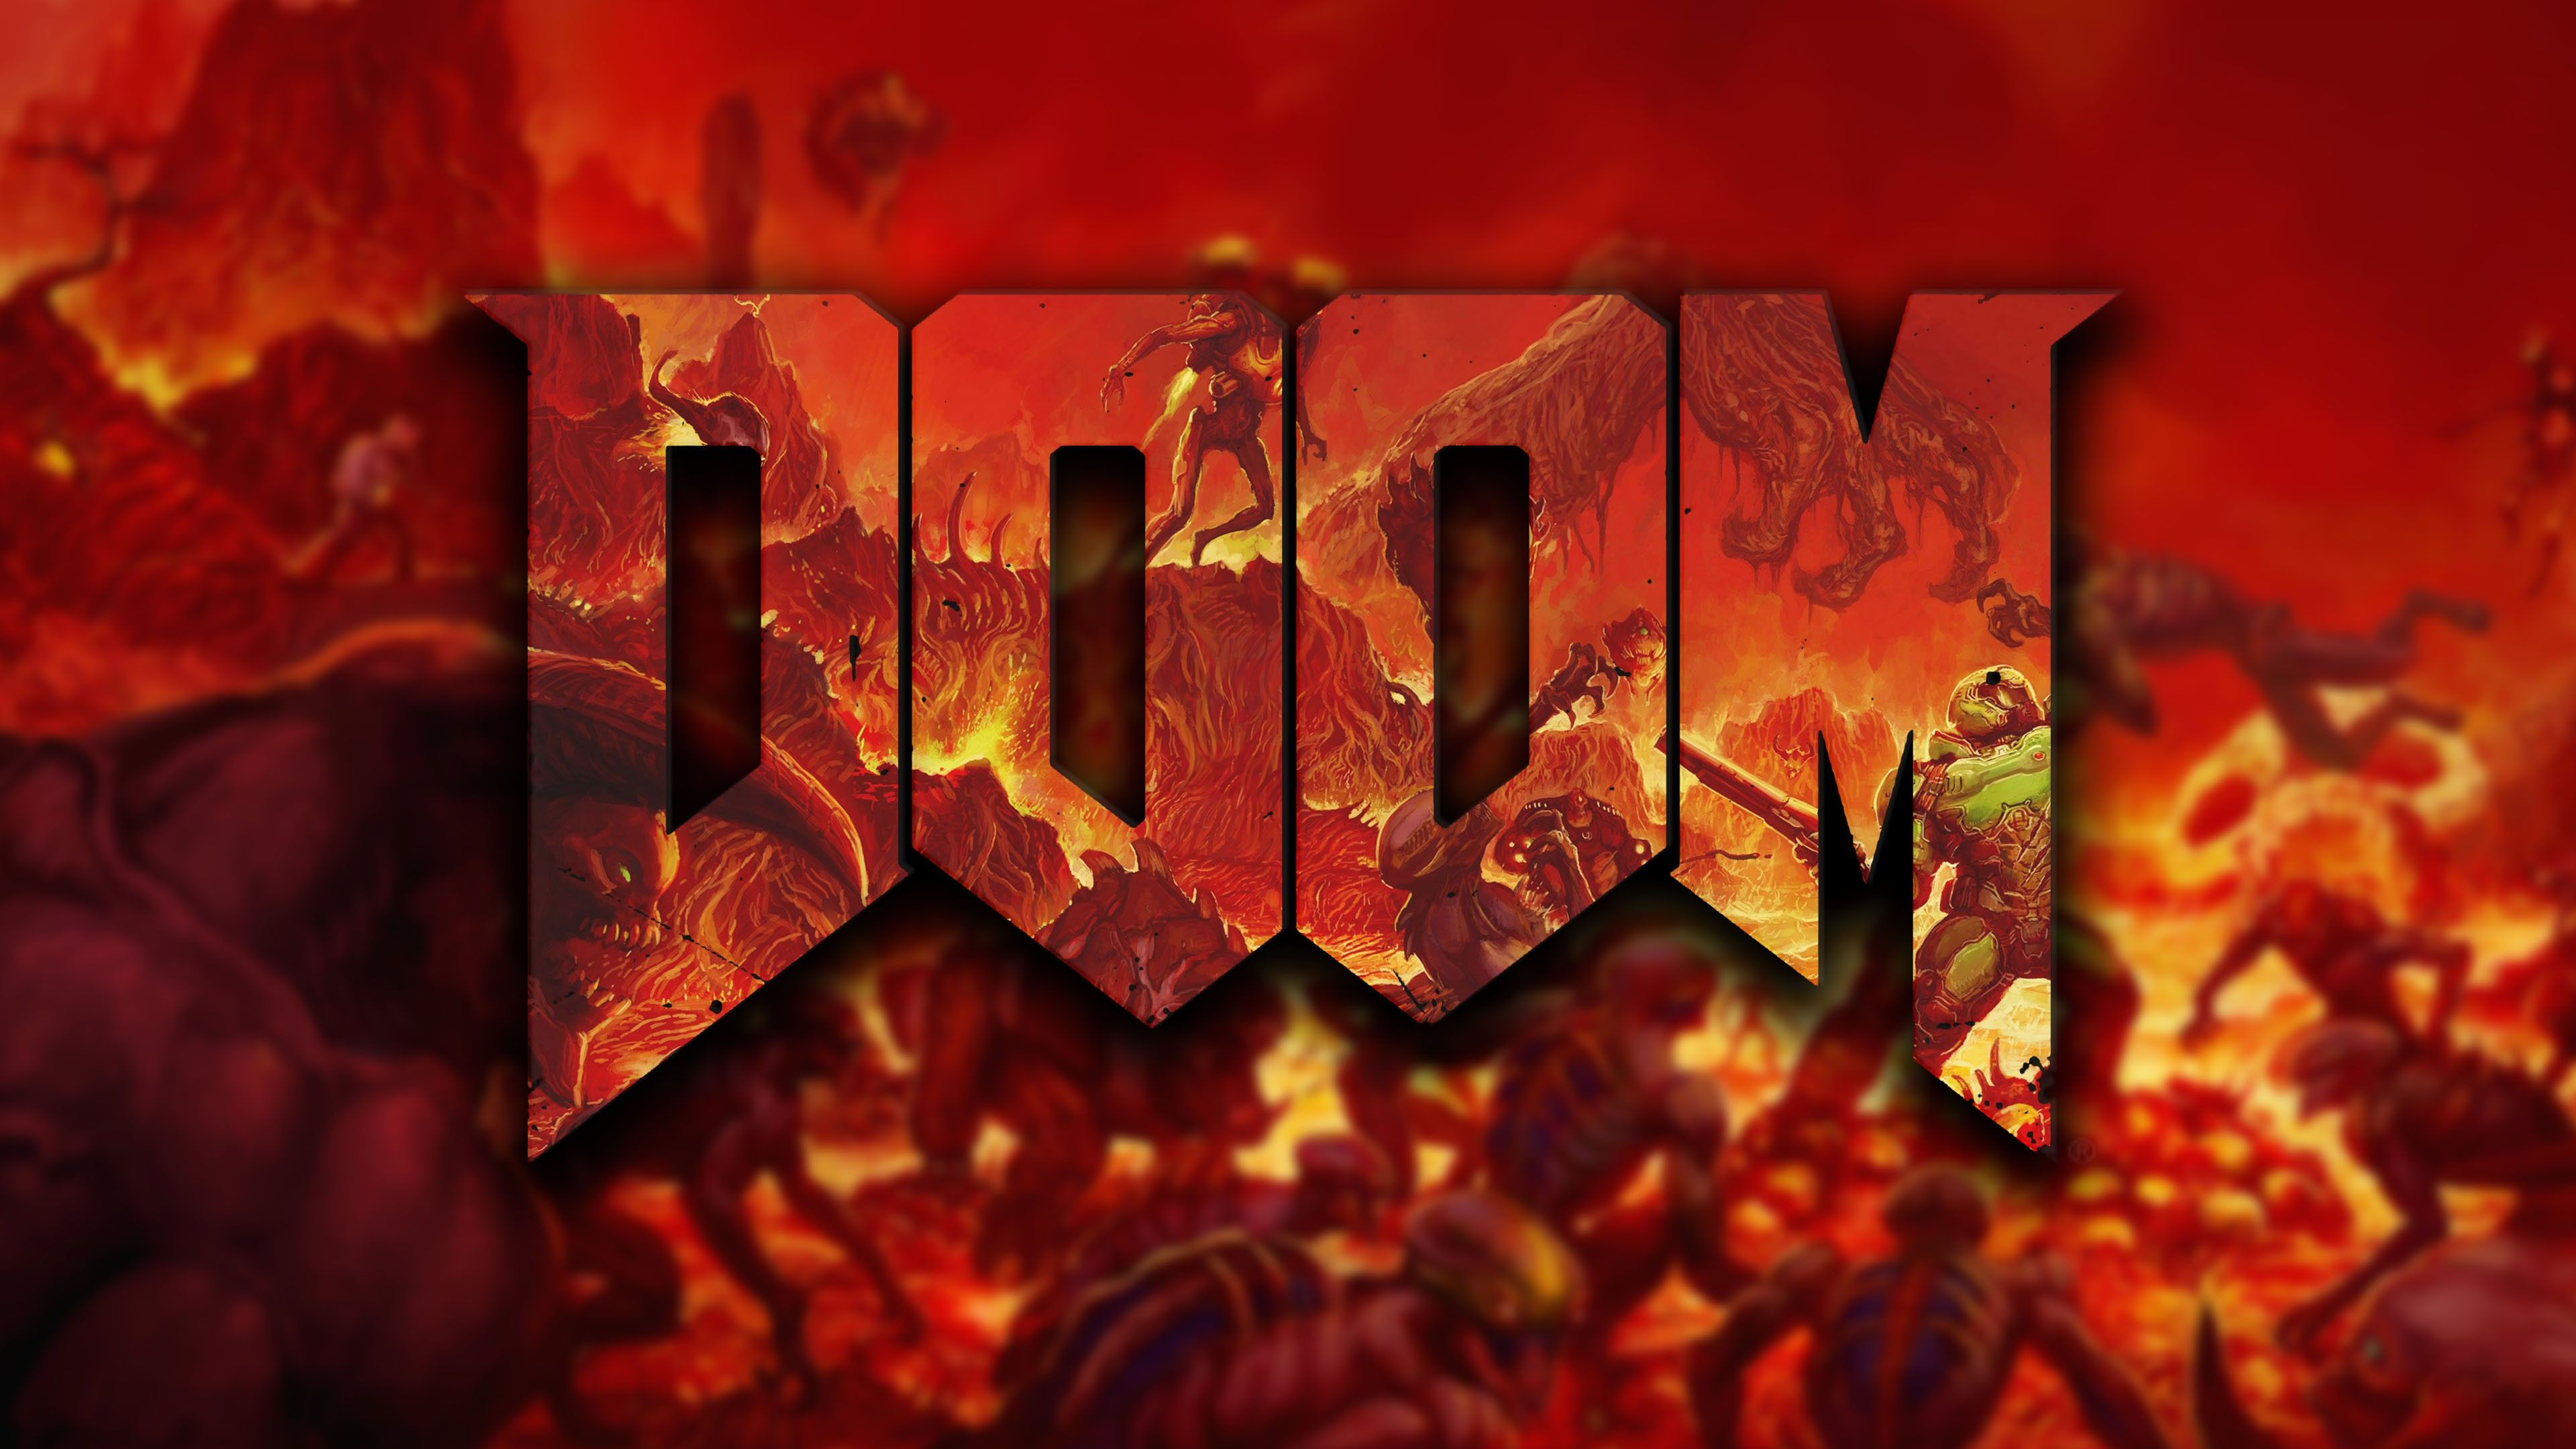 General 3840x2160 video games Doom (game) Background hd